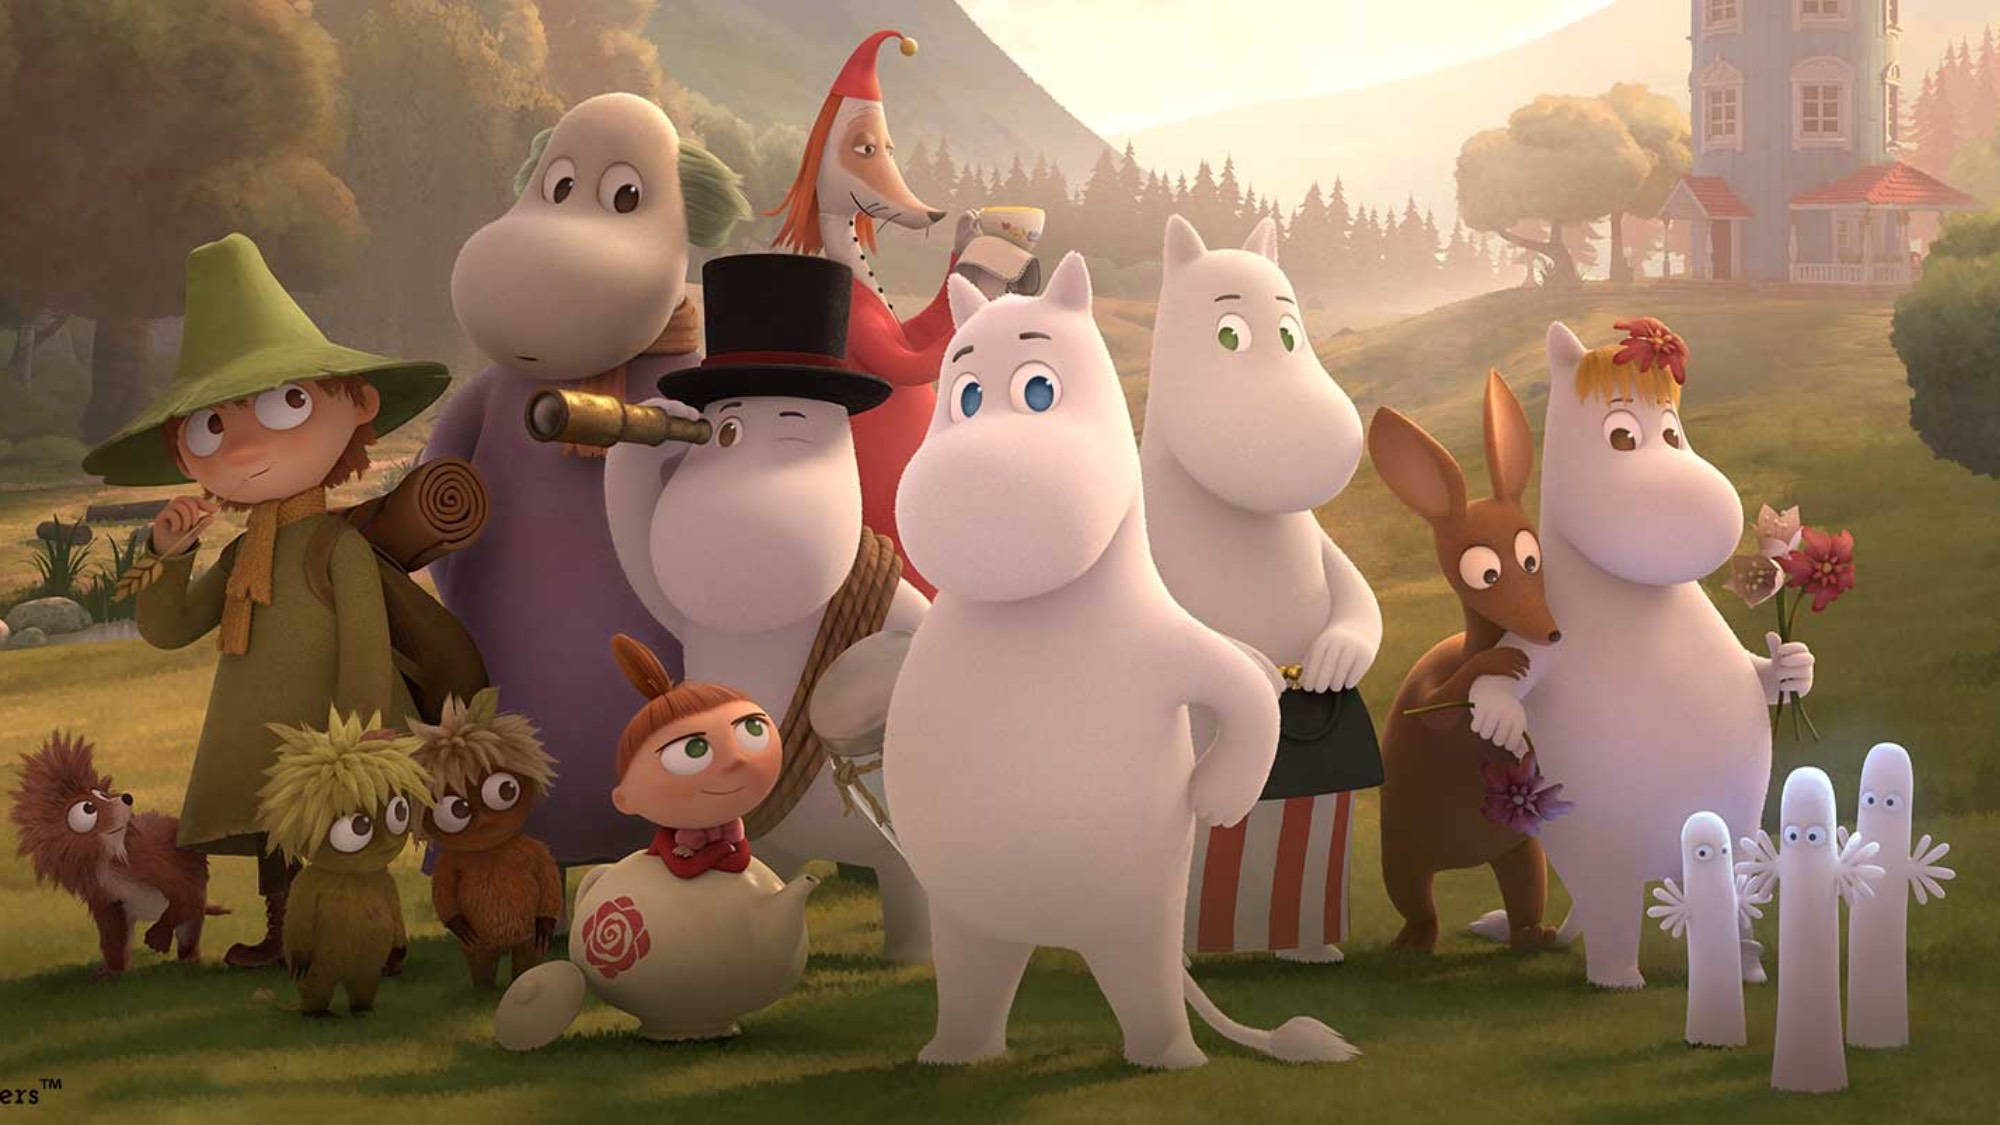 Characters from Moominvalley standing together